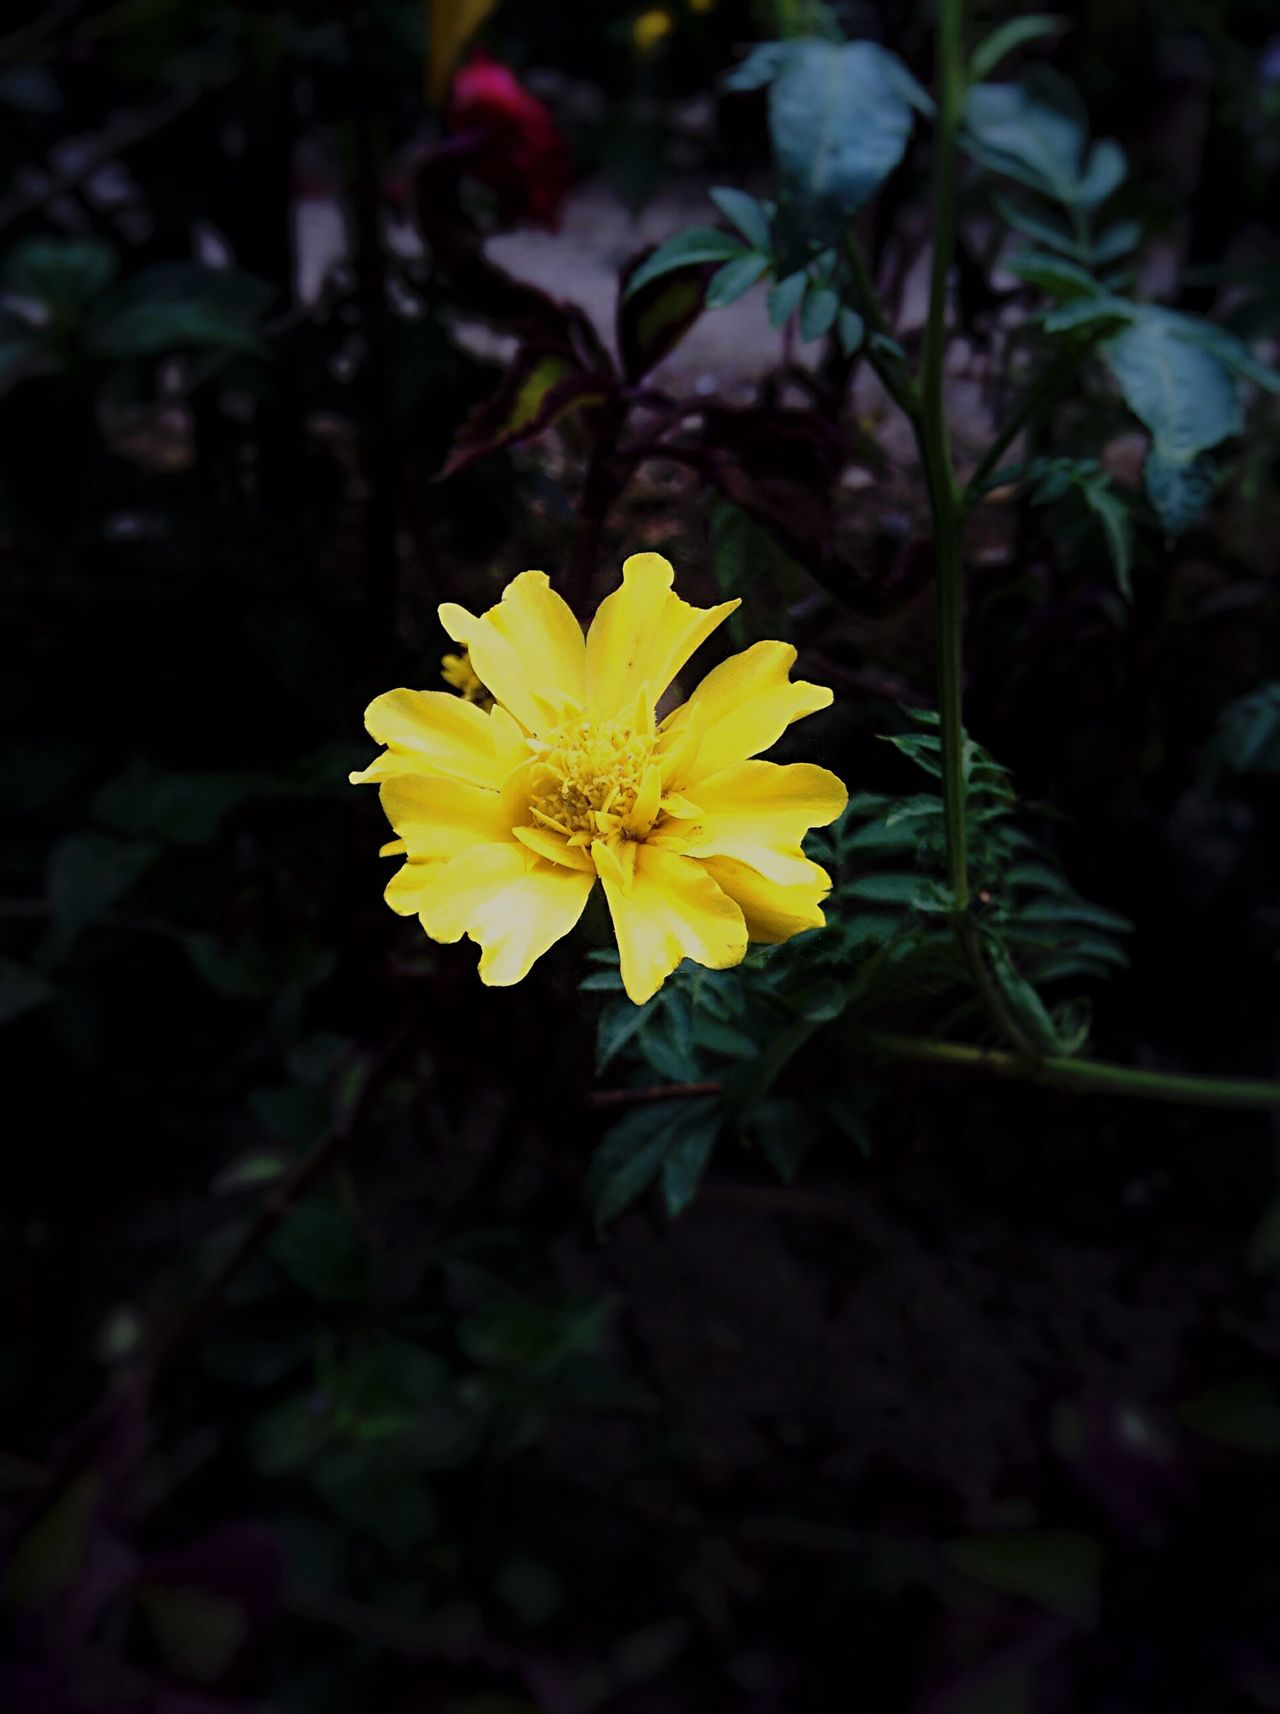 Enjoying The Flower Taking Photos Nature_collection Nature Photography Check This Out Yellow Flower Yellow Green Relaxing Provincetown  Philippines Eye4photography  EyeEm Best Shots Beautiful